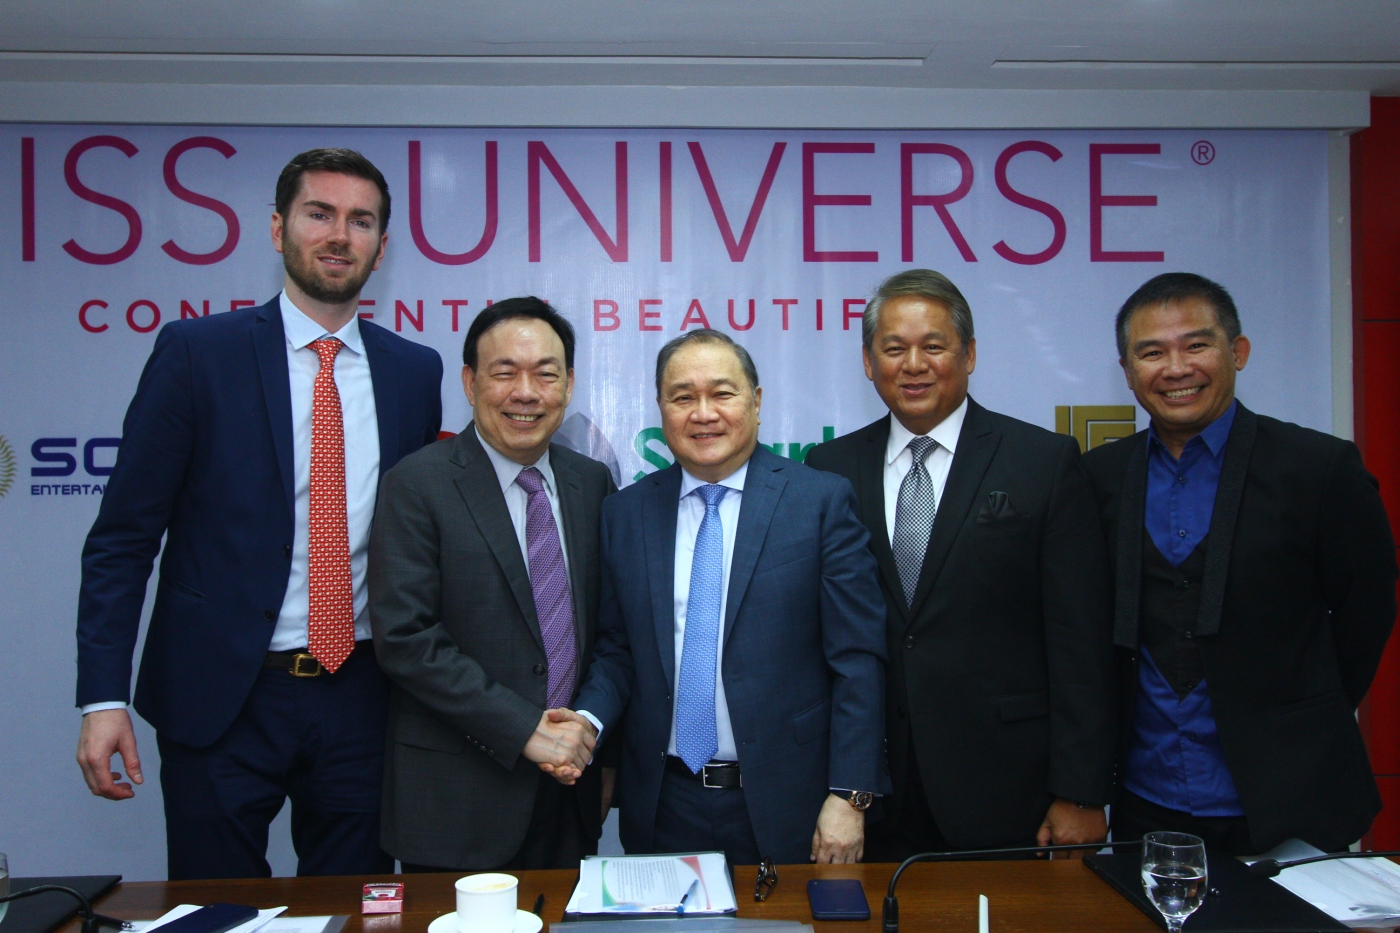 Shown in photo during the contract signing event held recently at PLDT RC Building in Makati City are, from left, Miss Universe Organization Business Development and Marketing Vice President Shawn McClain, Solar Entertainment Corp. President and CEO Wilson Tieng, PLDT Chairman Manny V. Pangilinan, PLDT and Smart Chief Revenue Officer Eric Alberto, and TV5 President and CEO Chot Reyes. The partnership includes the blocktime airing of the Coronation Night on January 30, as well as the exclusive airing of the long gown and swimsuit preliminary competitions onJanuary 28 and 29which will also be available online on the same day, powered by PLDT and Smart.